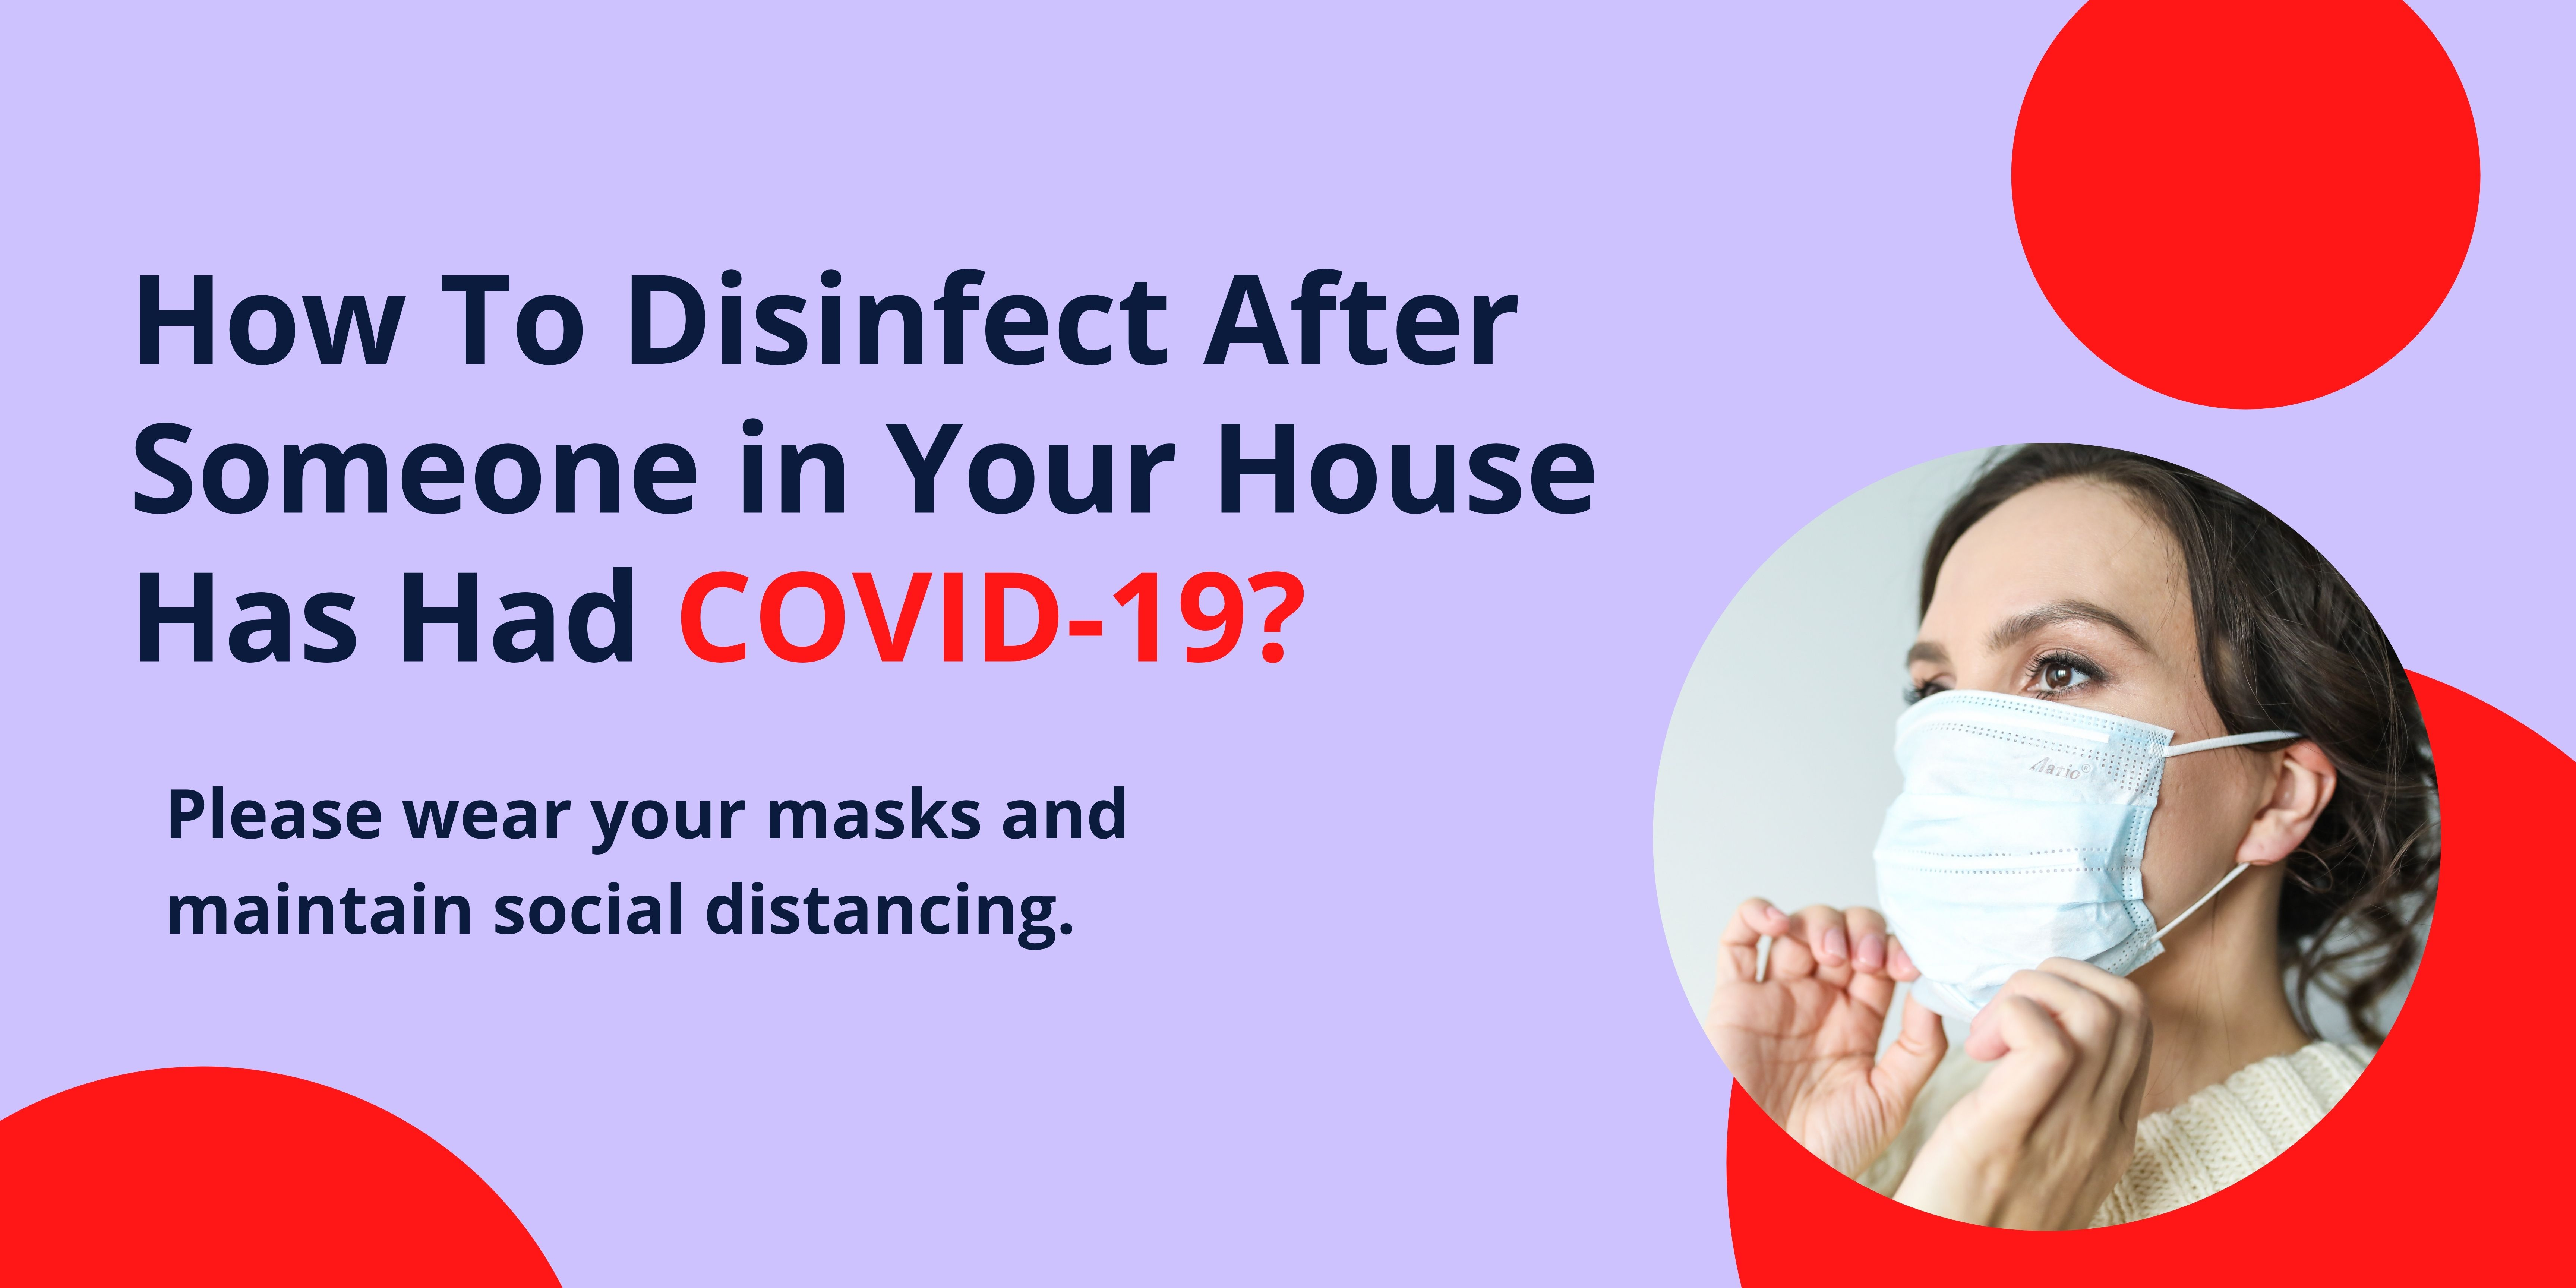 How to Disinfect After Someone in Your House Has Had COVID-19?